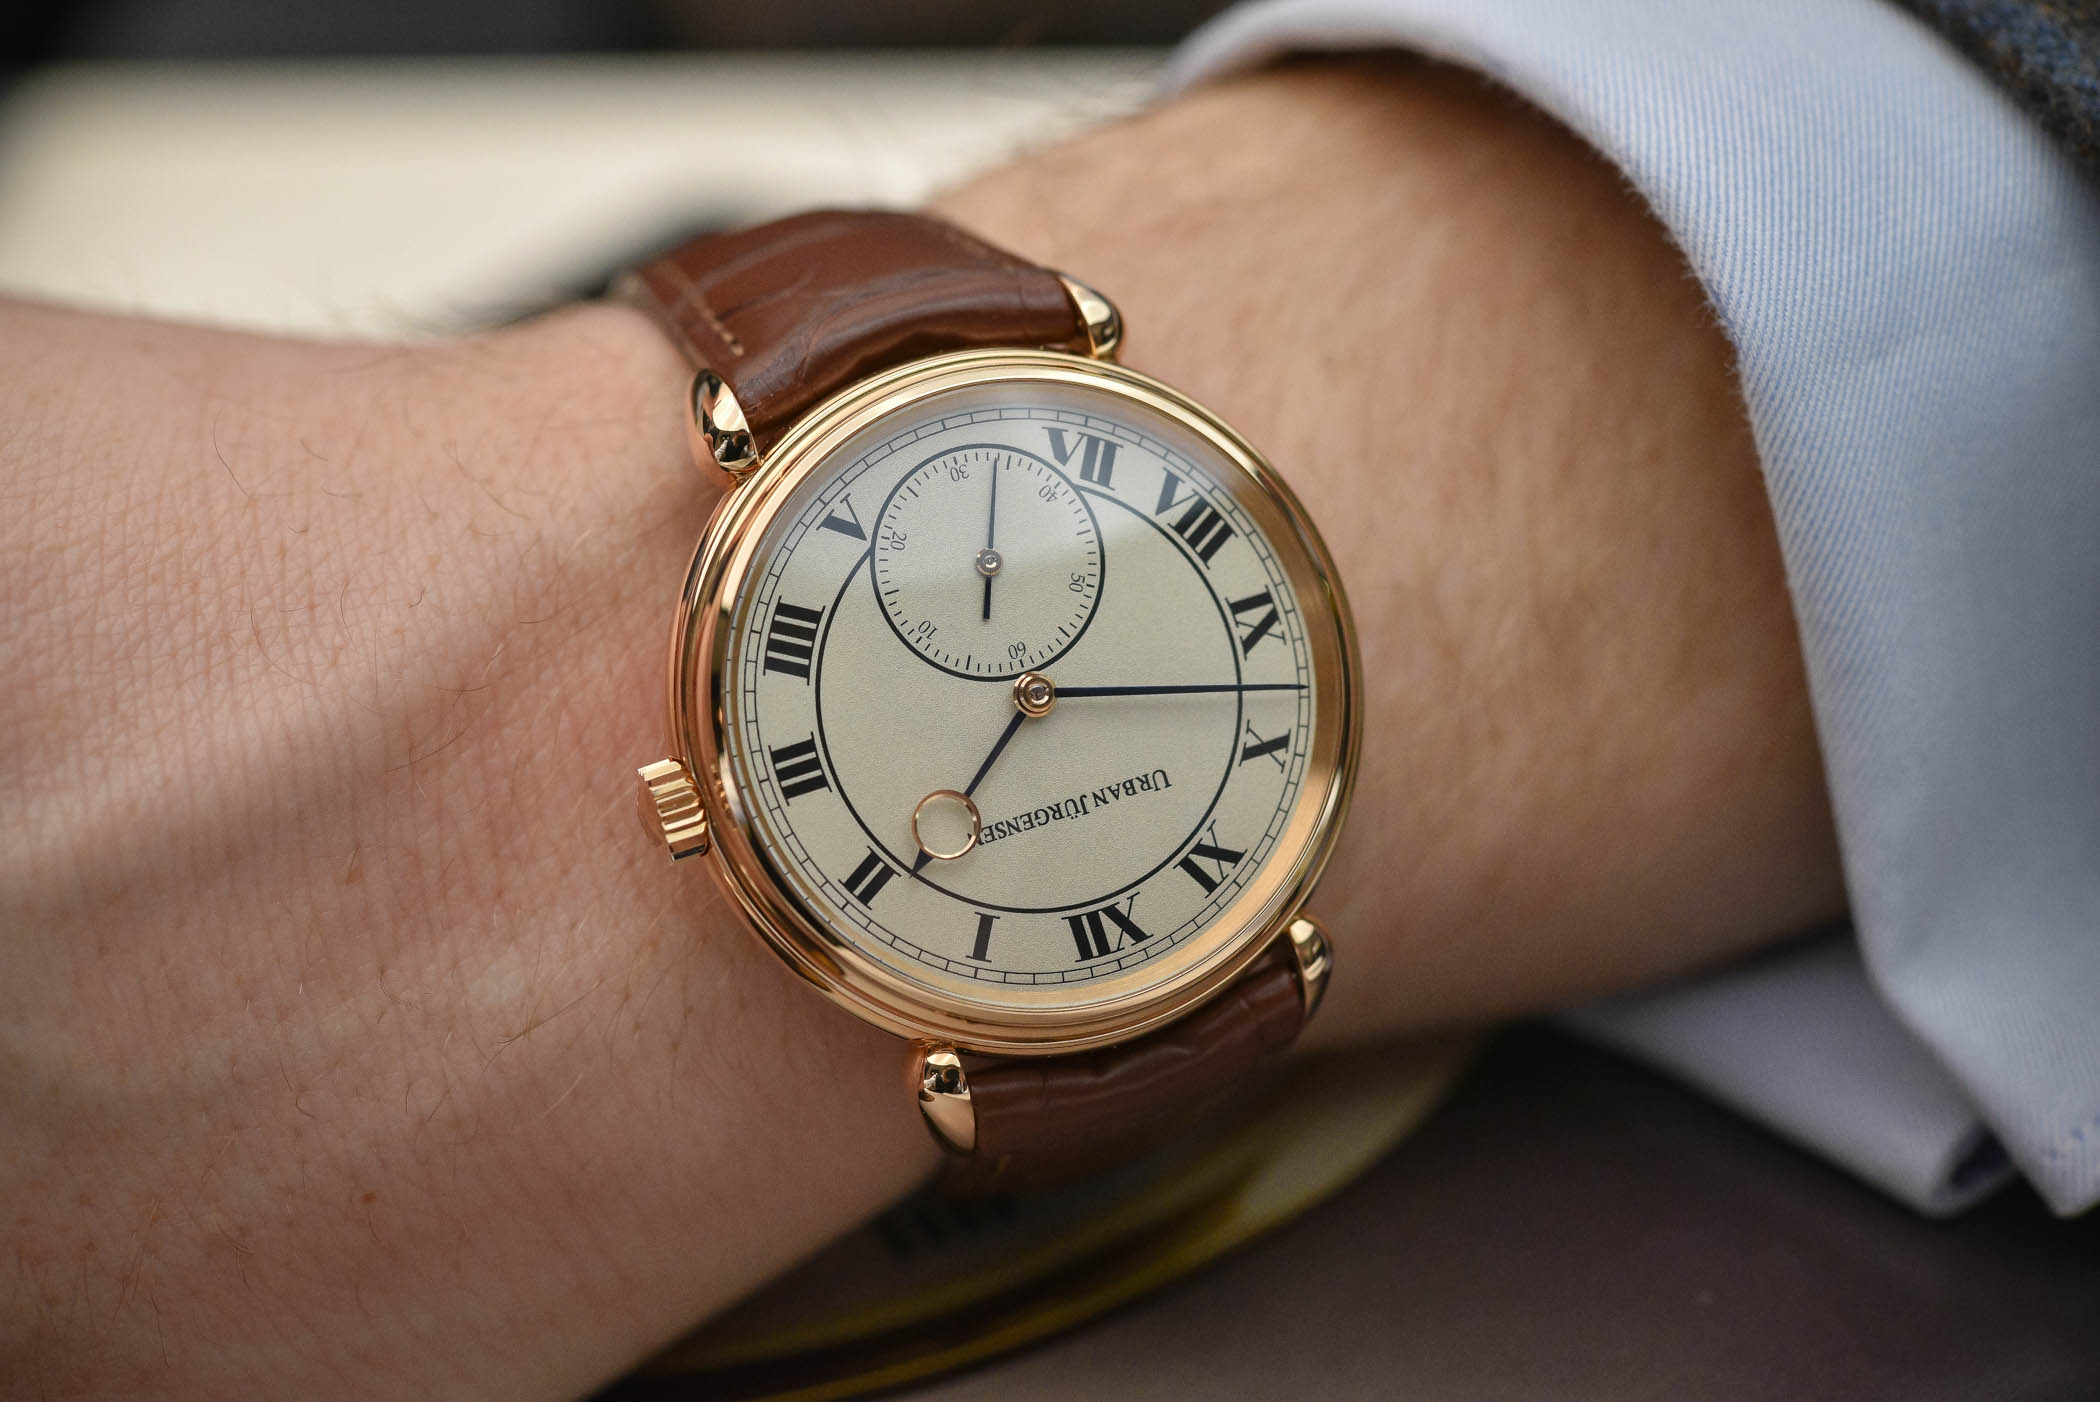 Hands-On – Urban Jürgensen Adds Handsome Grenage Dials to the Reference 1142